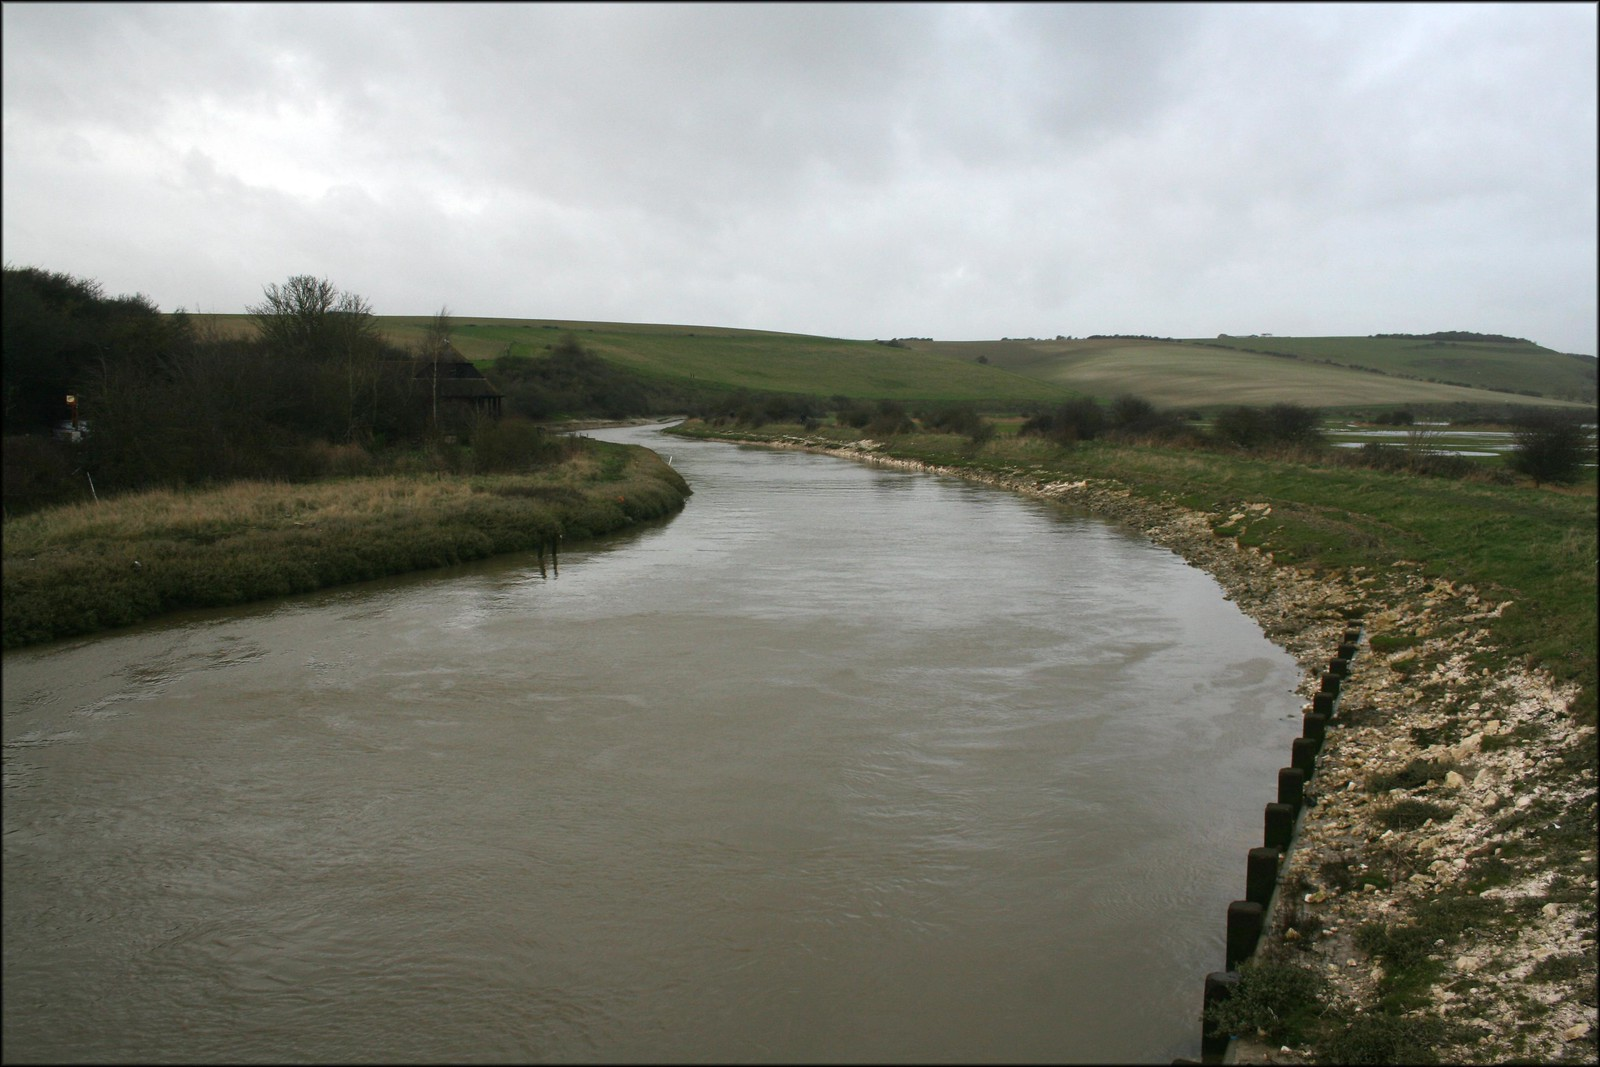 The Cuckmere River near Cuckmere Haven